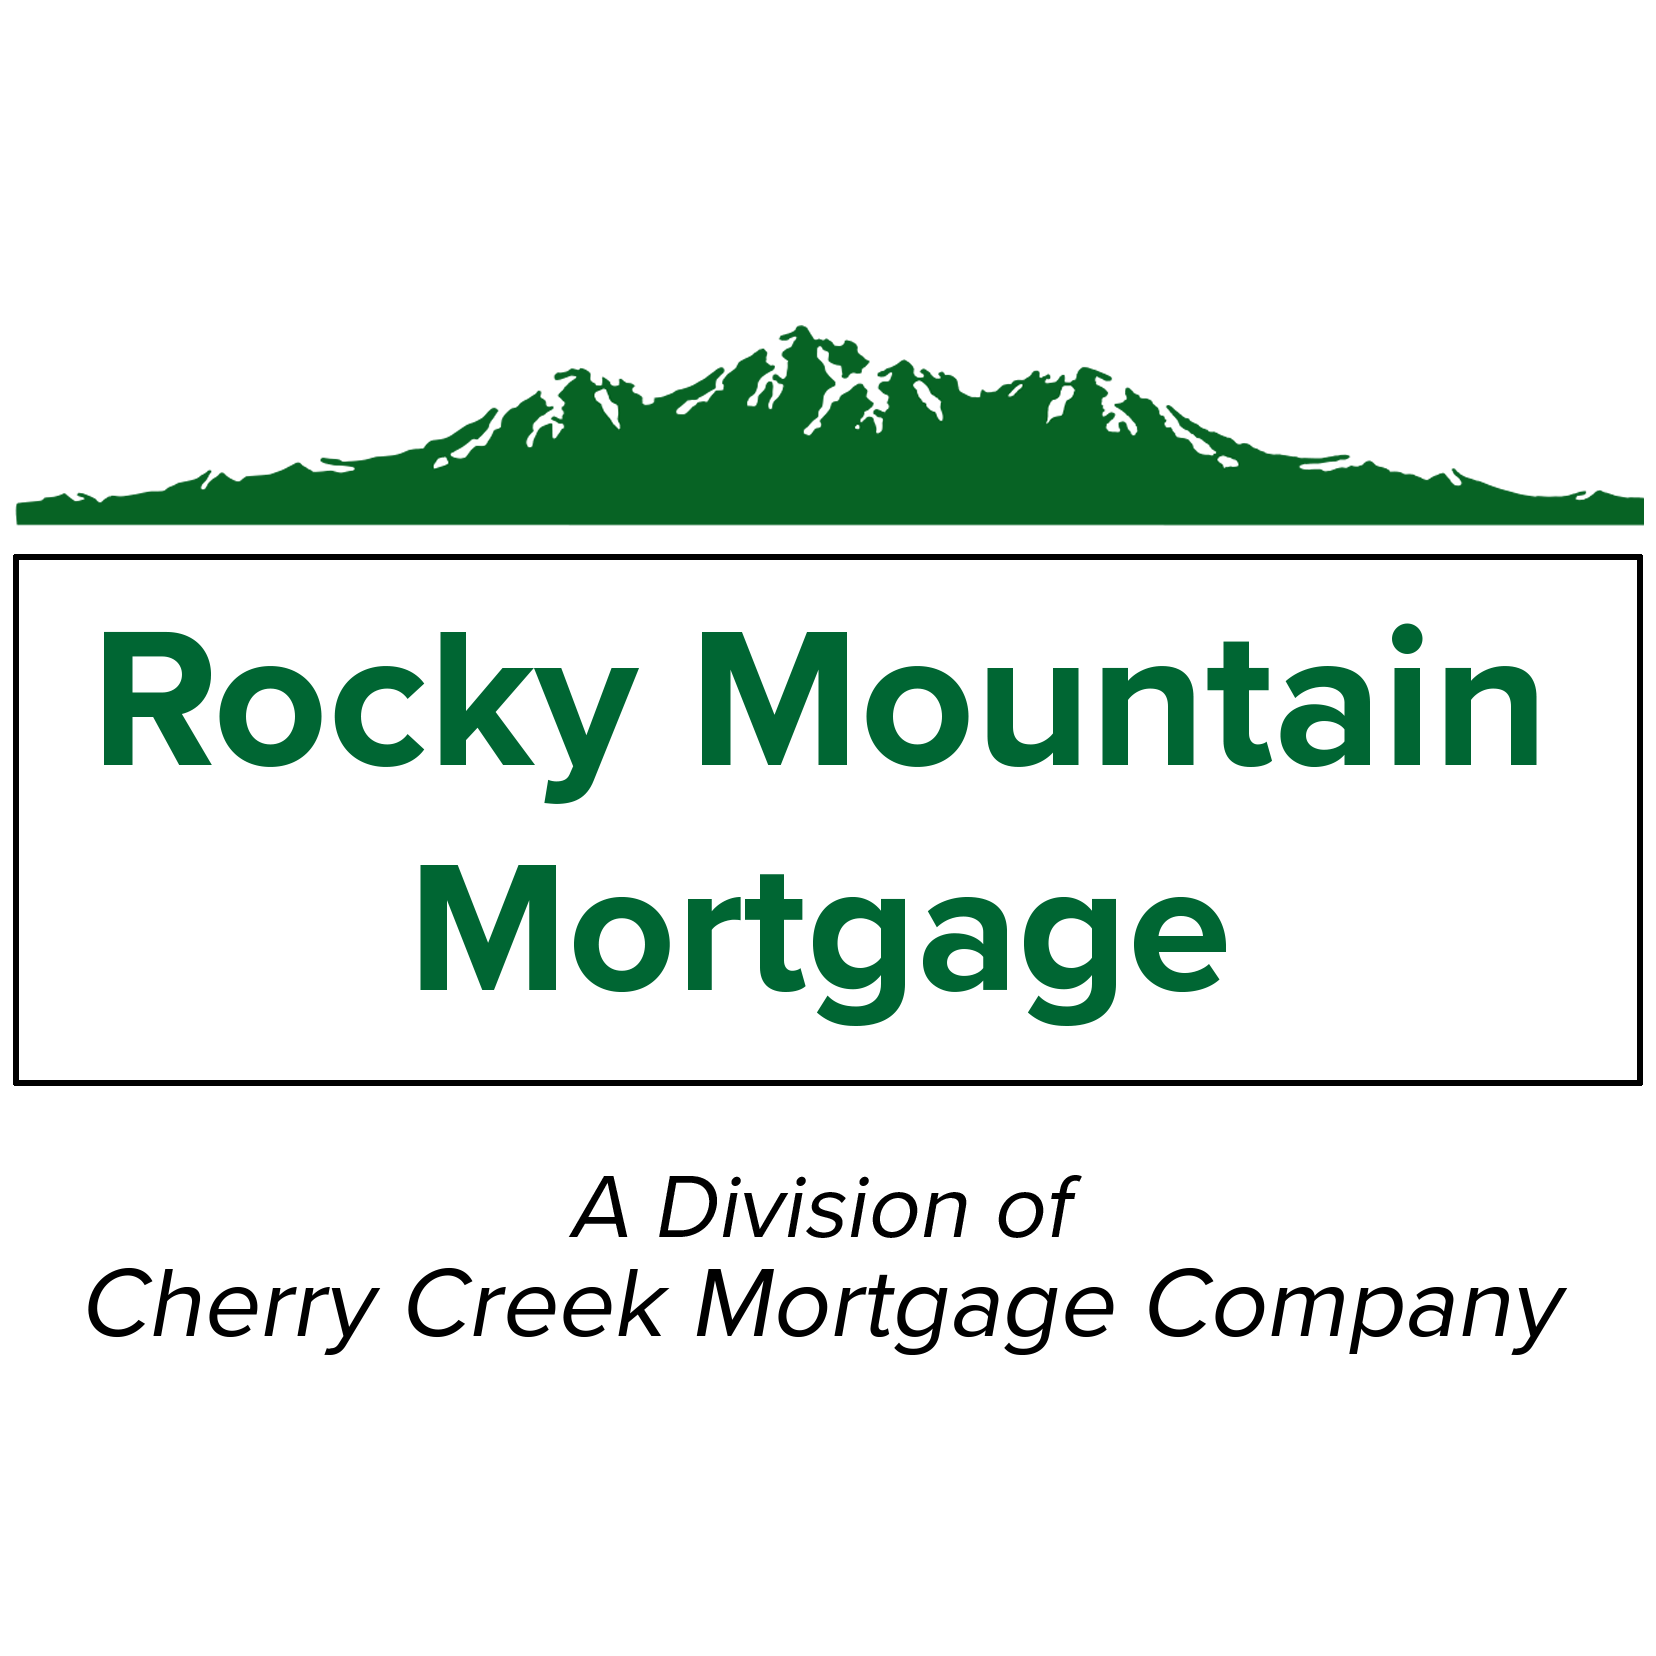 Rocky Mountain Mortgage, Jason Brewer, NMLS #1010376